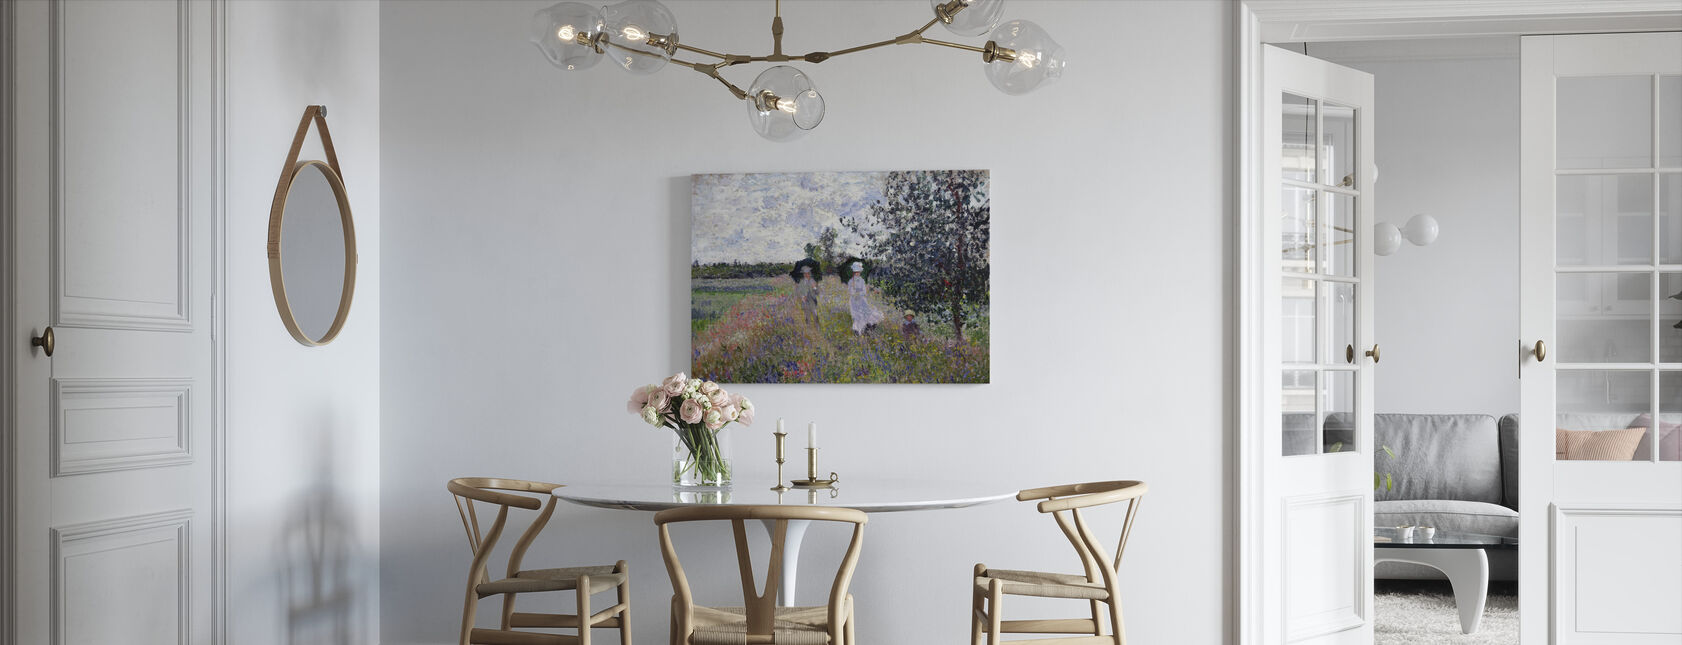 Promenade - Claude Monet - Canvas print - Kitchen